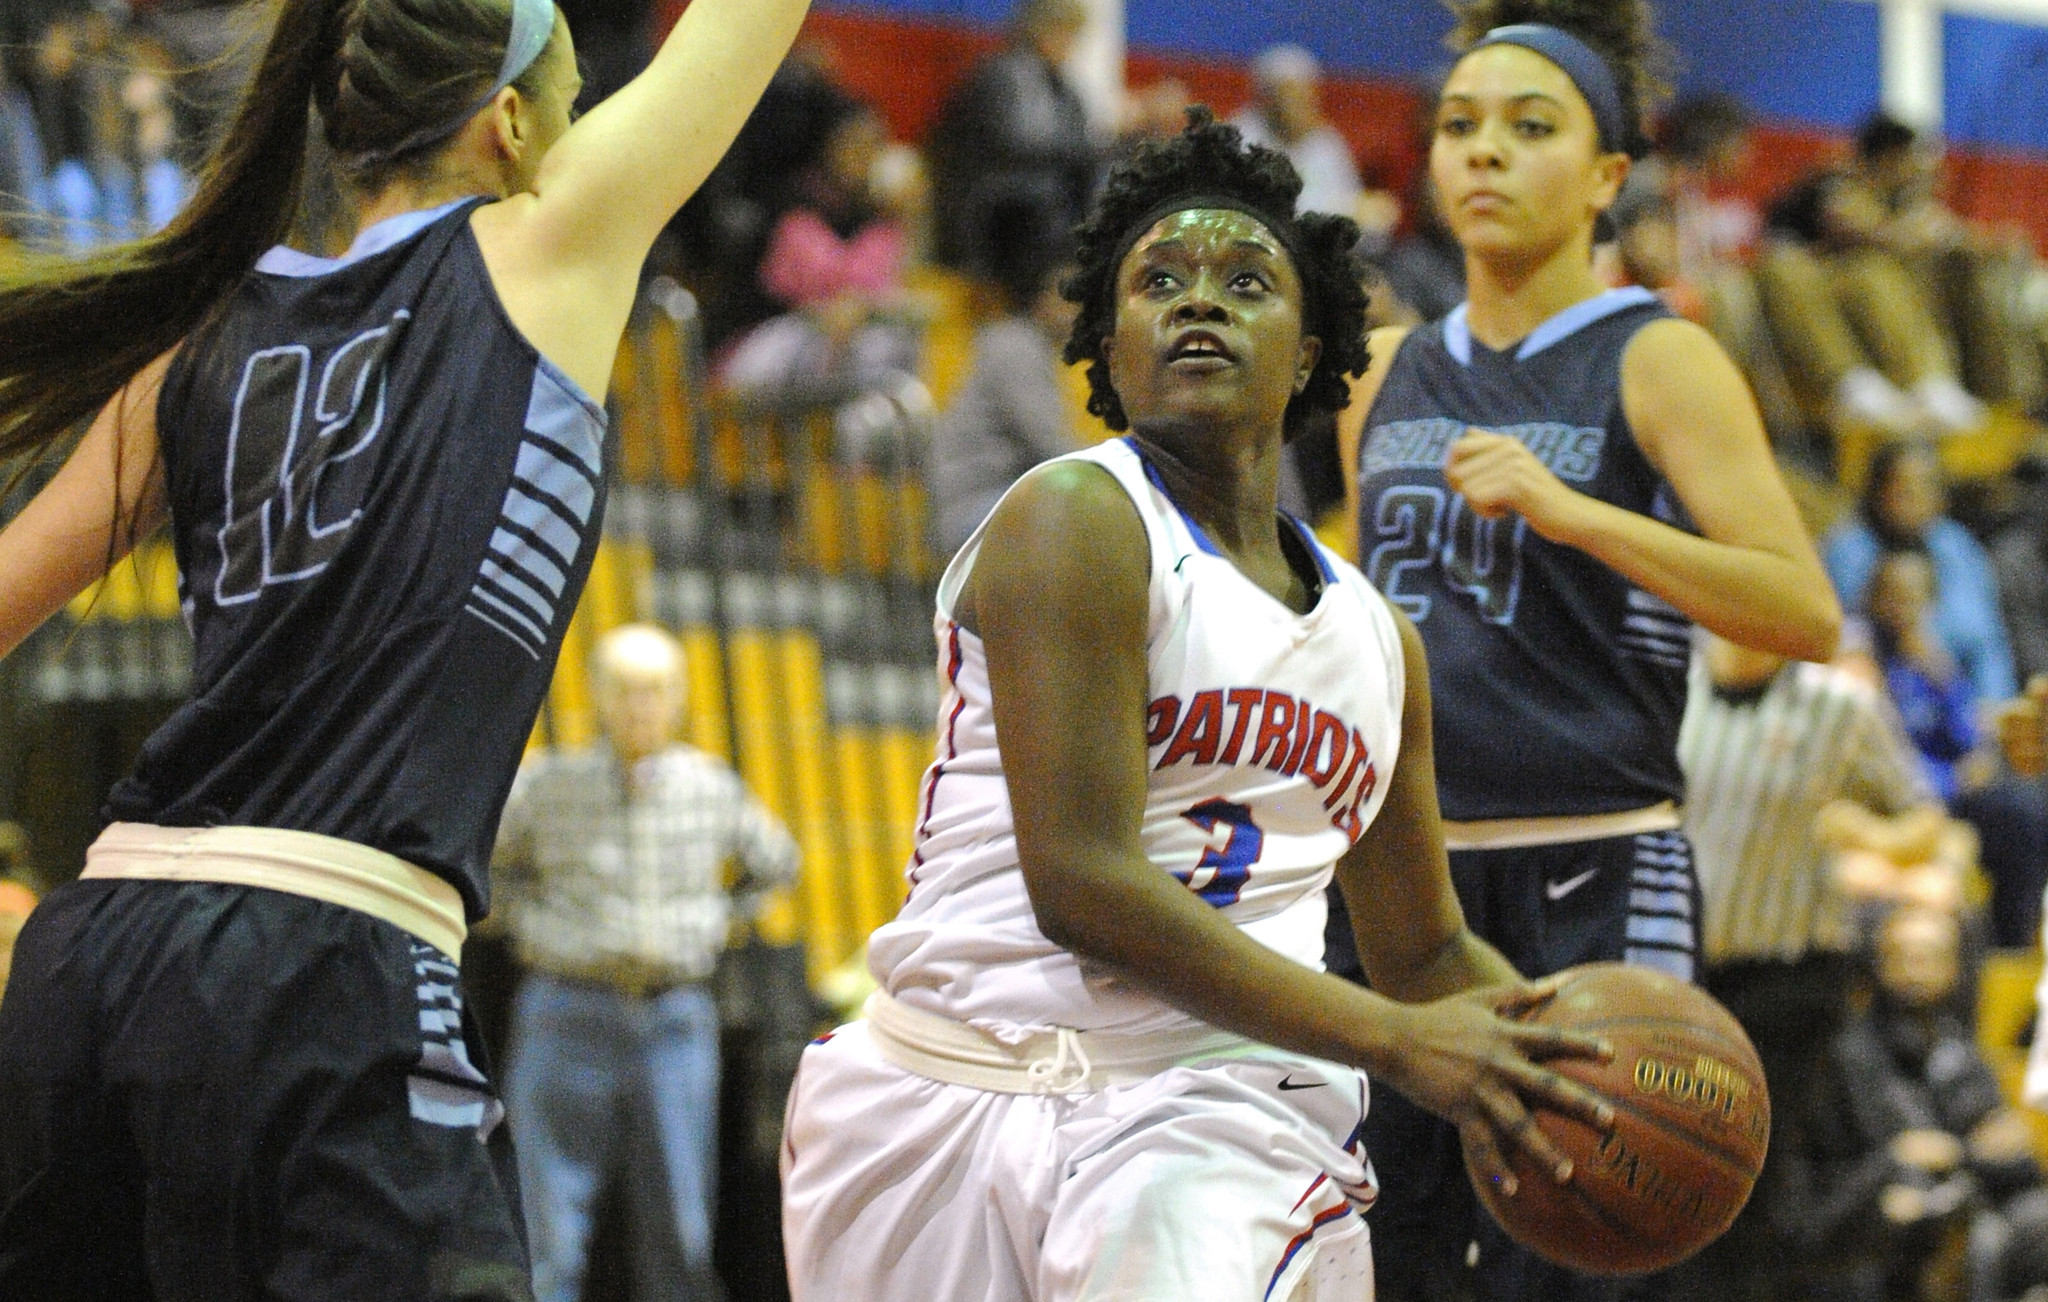 mill river girls View the schedule, scores, league standings, rankings, roster and articles for the mill river minutemen girls basketball team on maxpreps.